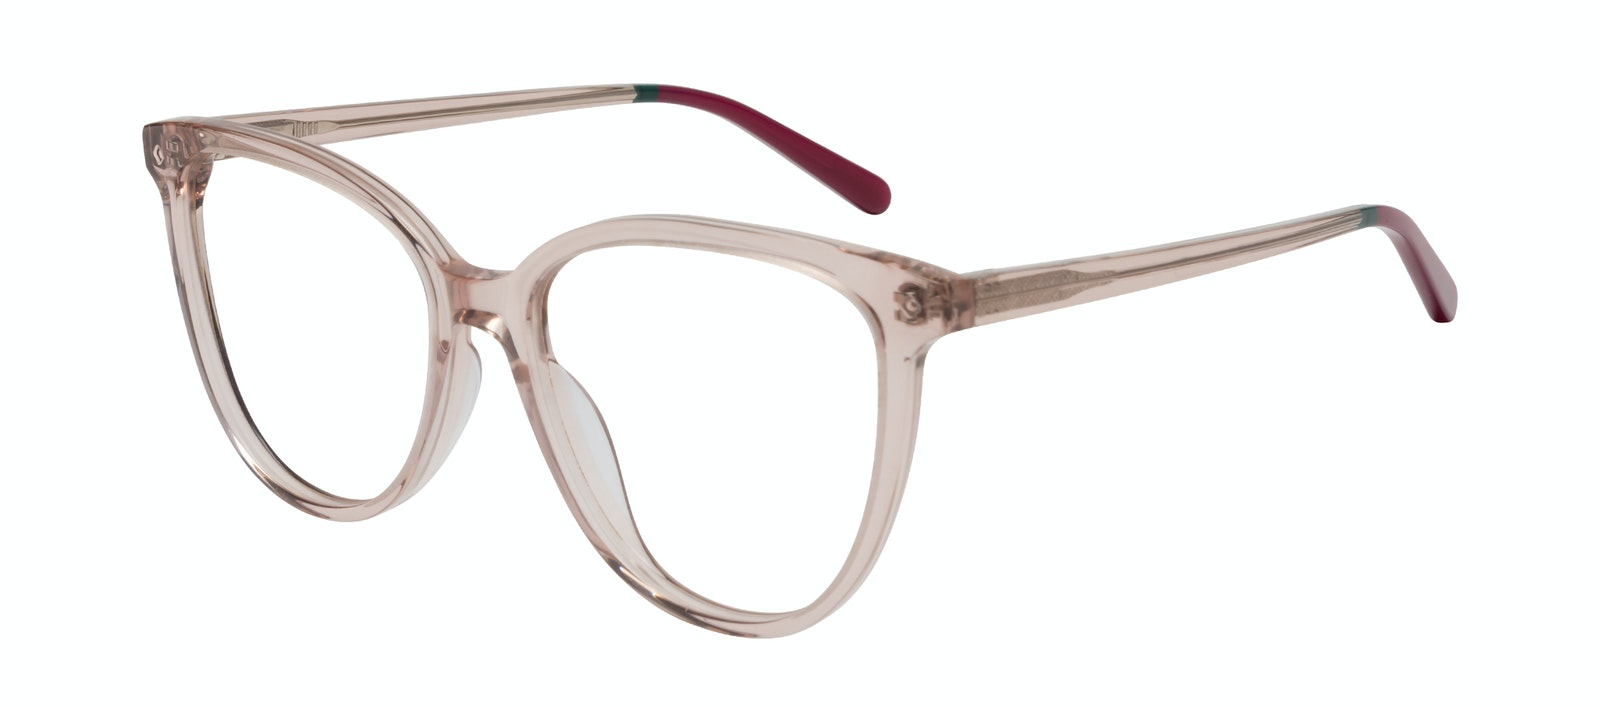 Affordable Fashion Glasses Eyeglasses Women Jane Rose Tilt